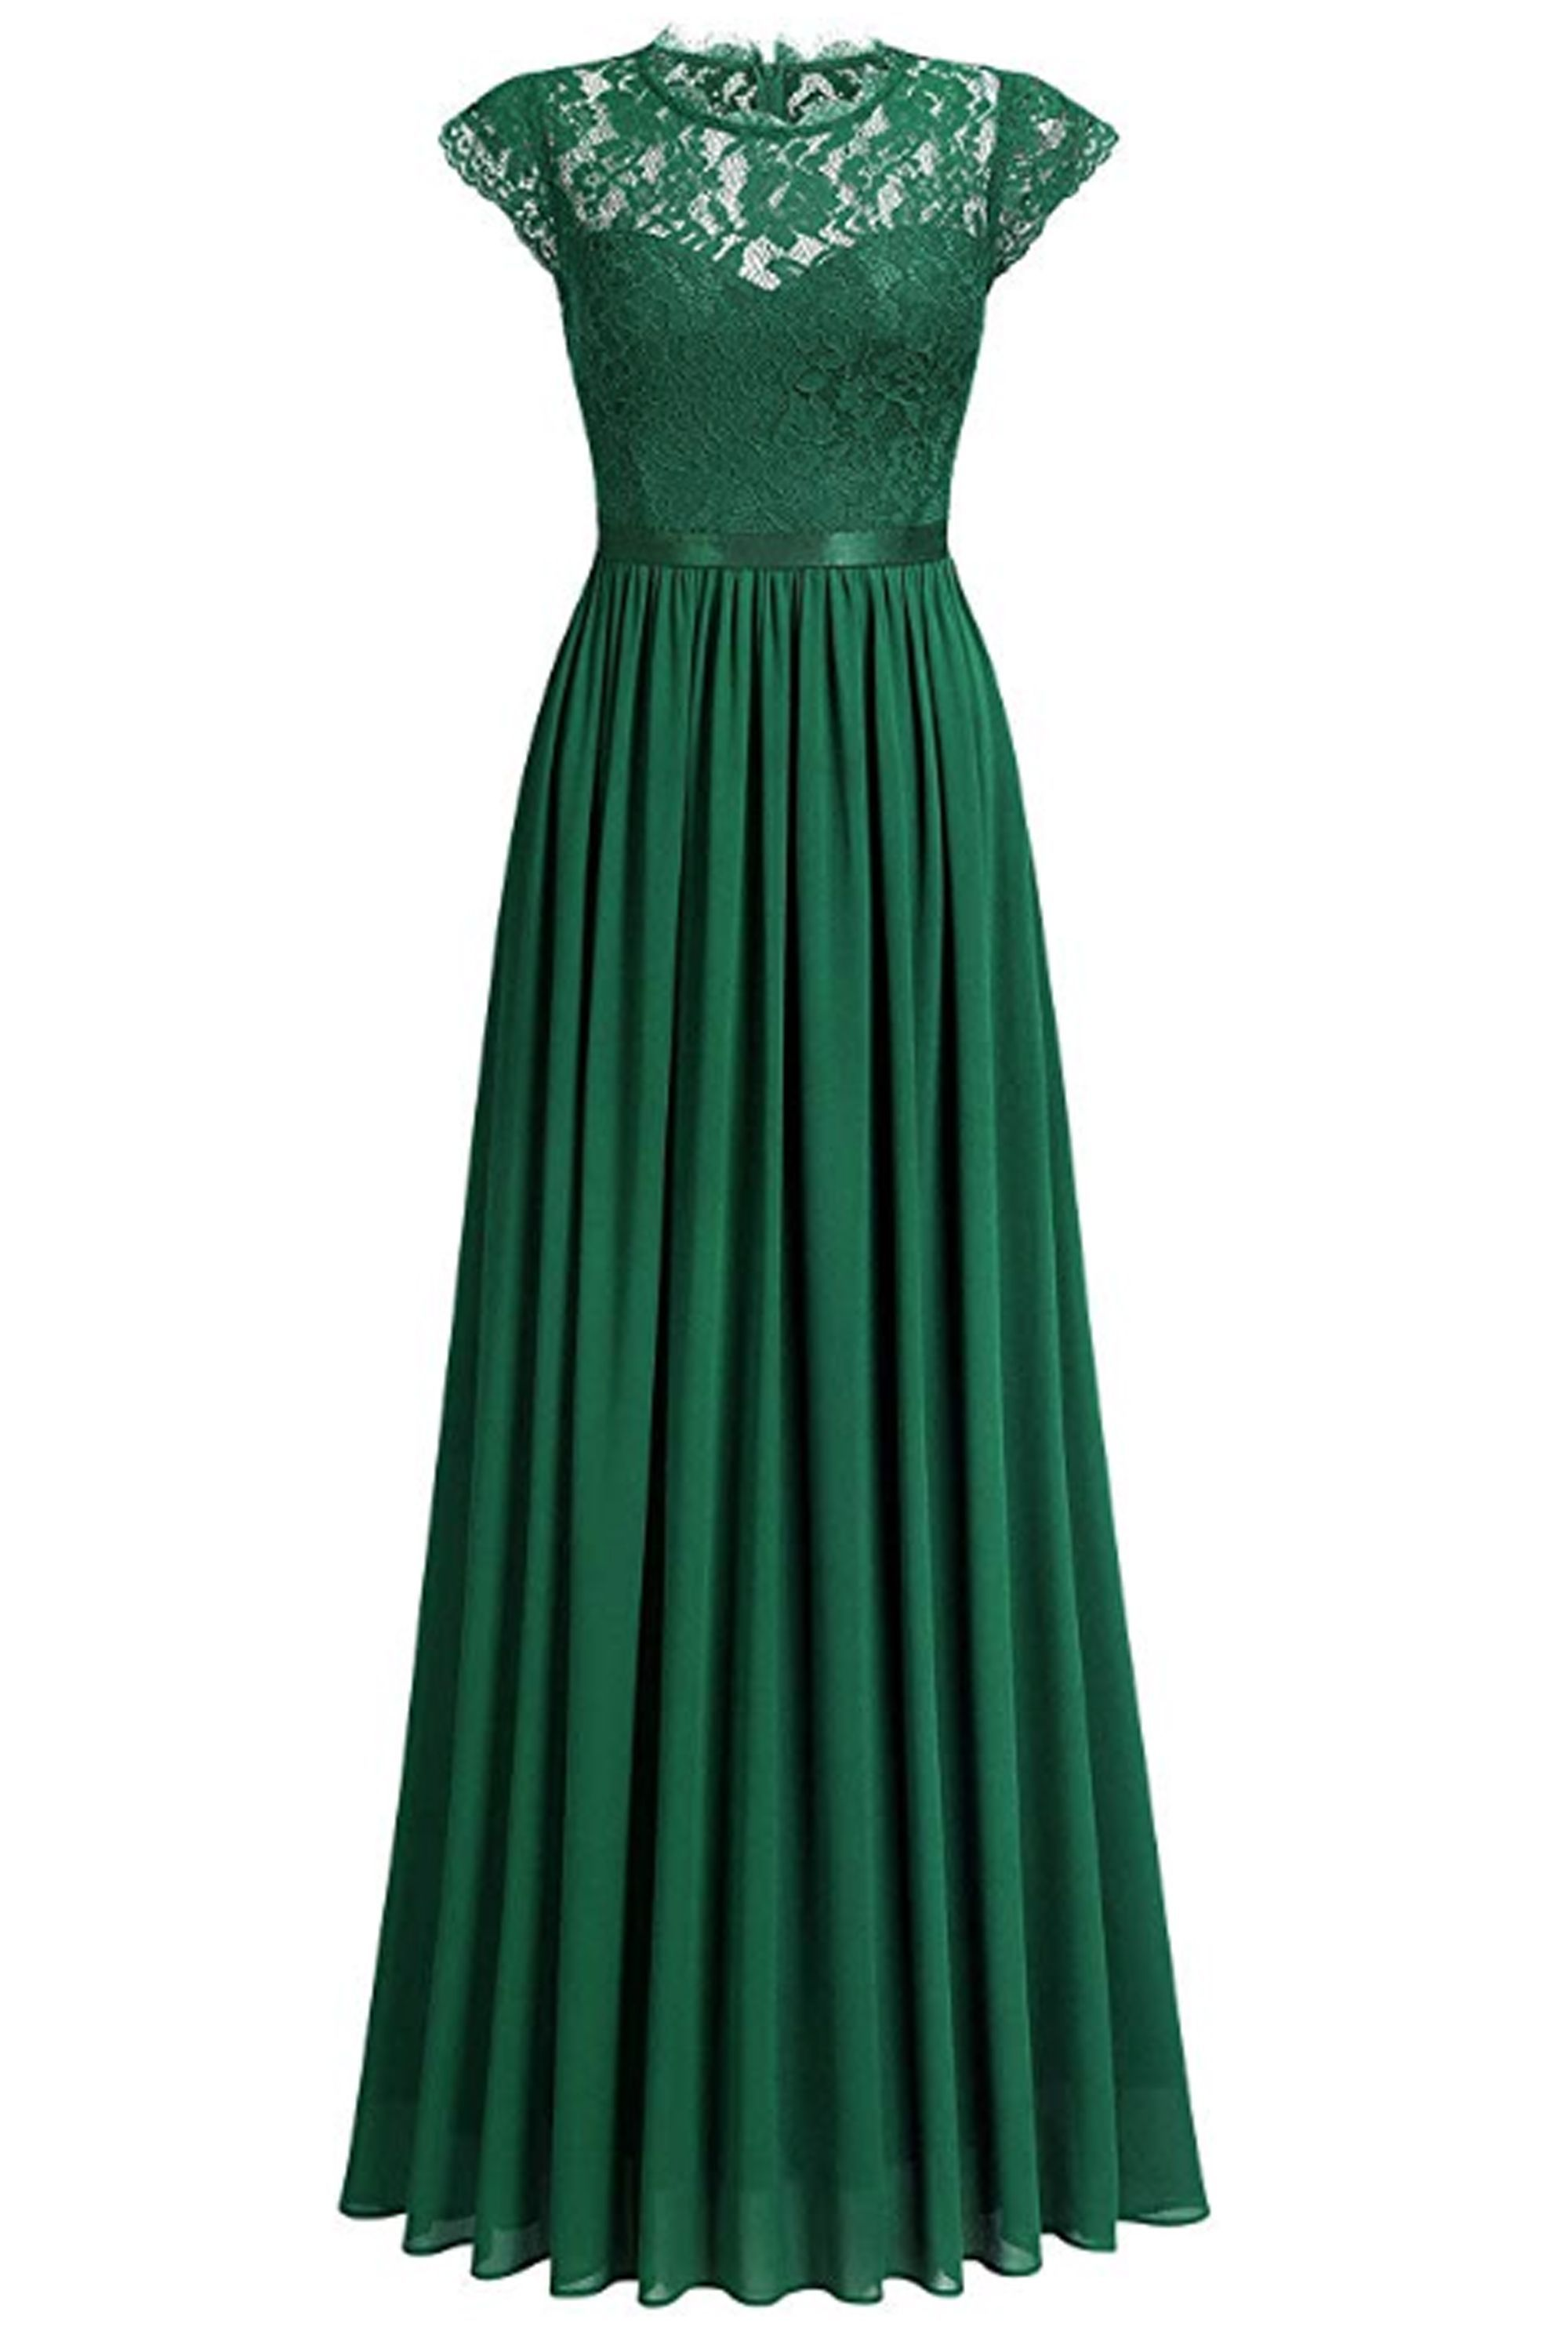 winter dresses to wear to a wedding classy